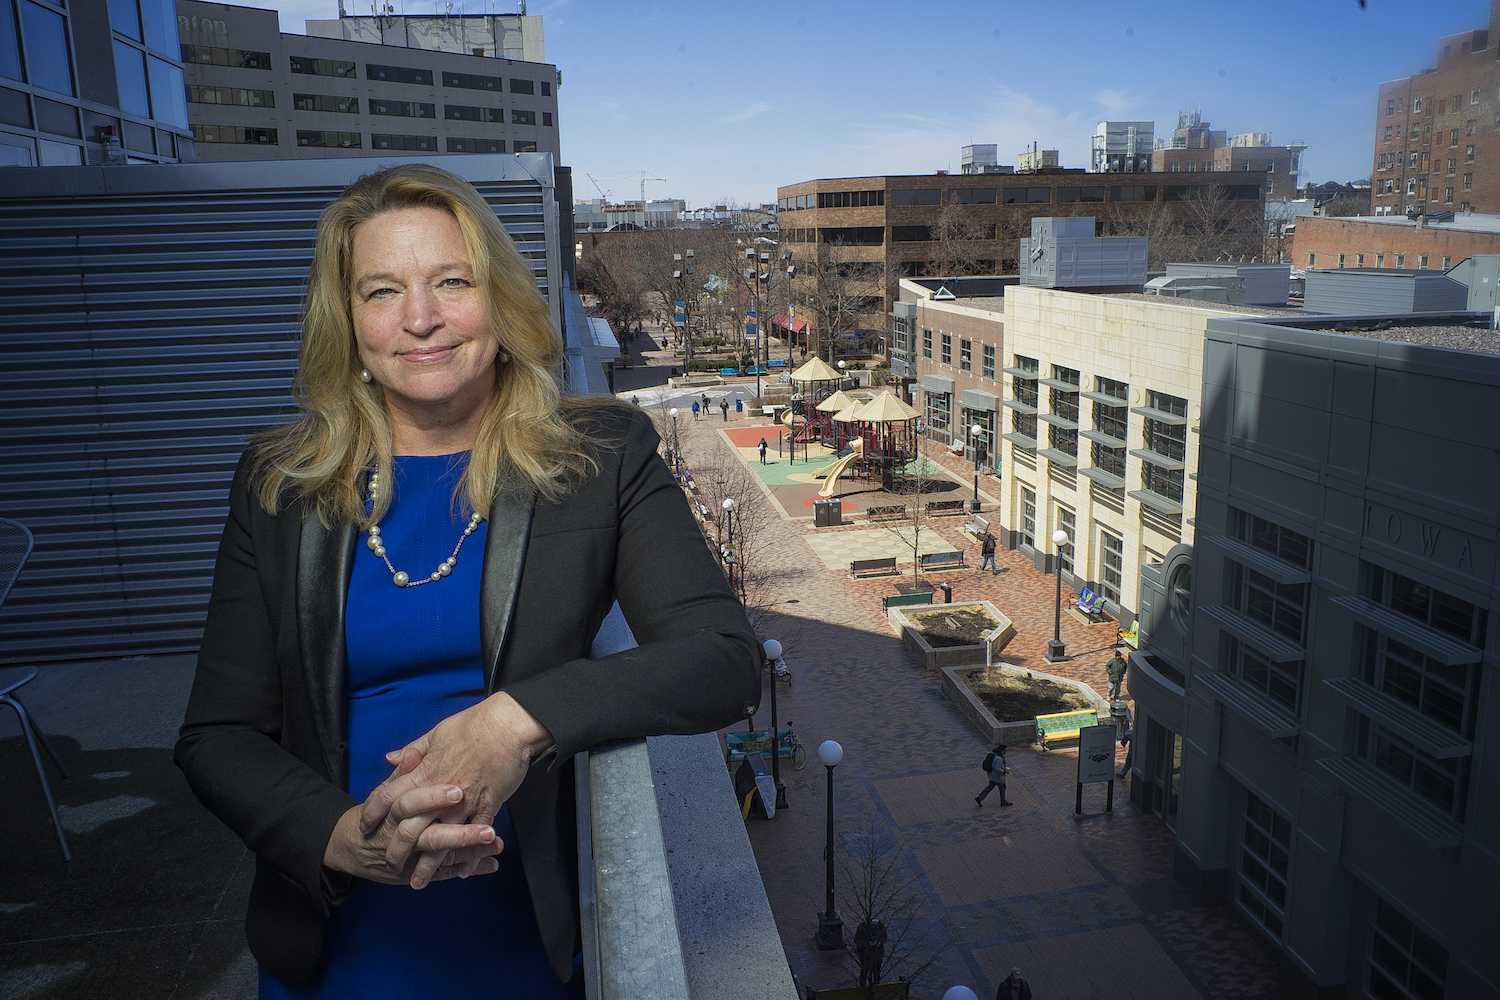 Former NASA chief scientist Ellen Stofan lectures on climate change